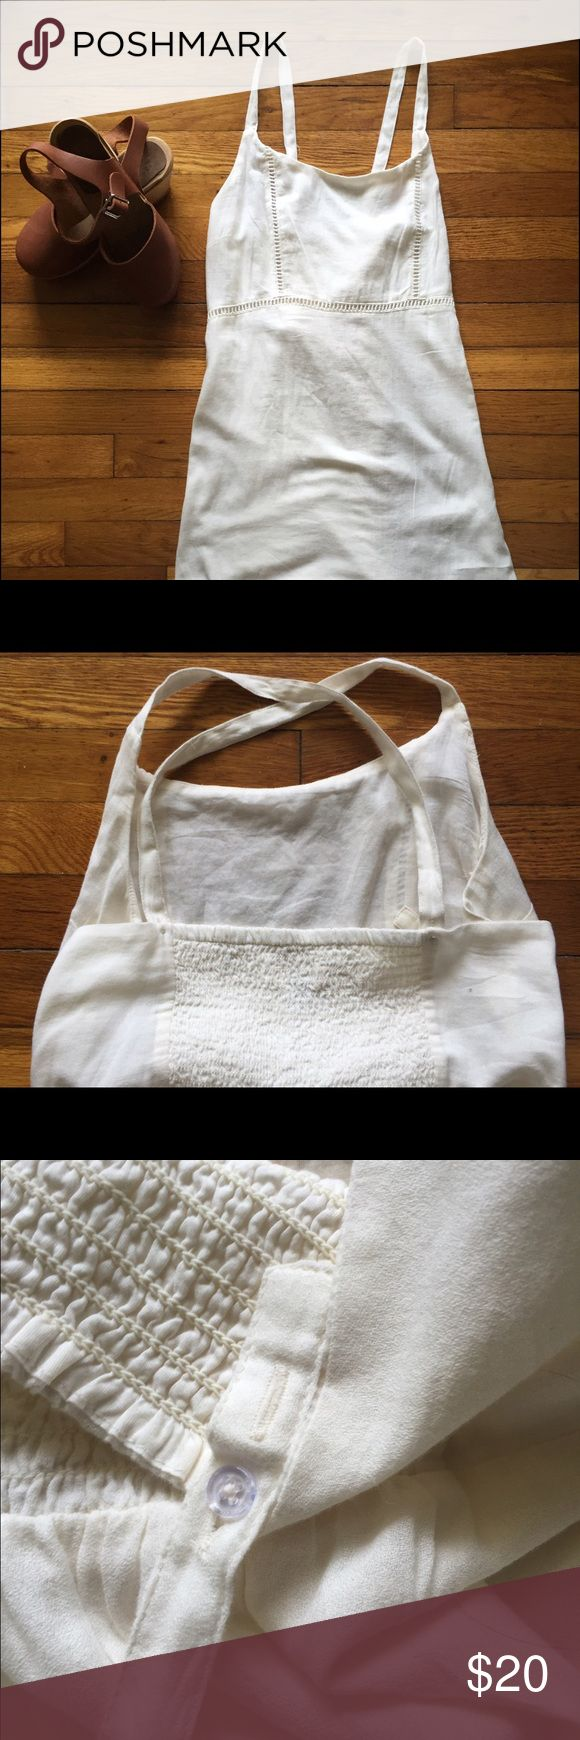 Brand new with tag, white summer dress This dress is brand new with tags. The straps are adjustable so they can be cross-crossed in the back. It is very login weight and comfortable, excellent for those hot summer cookouts or night out on the town. Price is negotiable Old Navy Dresses